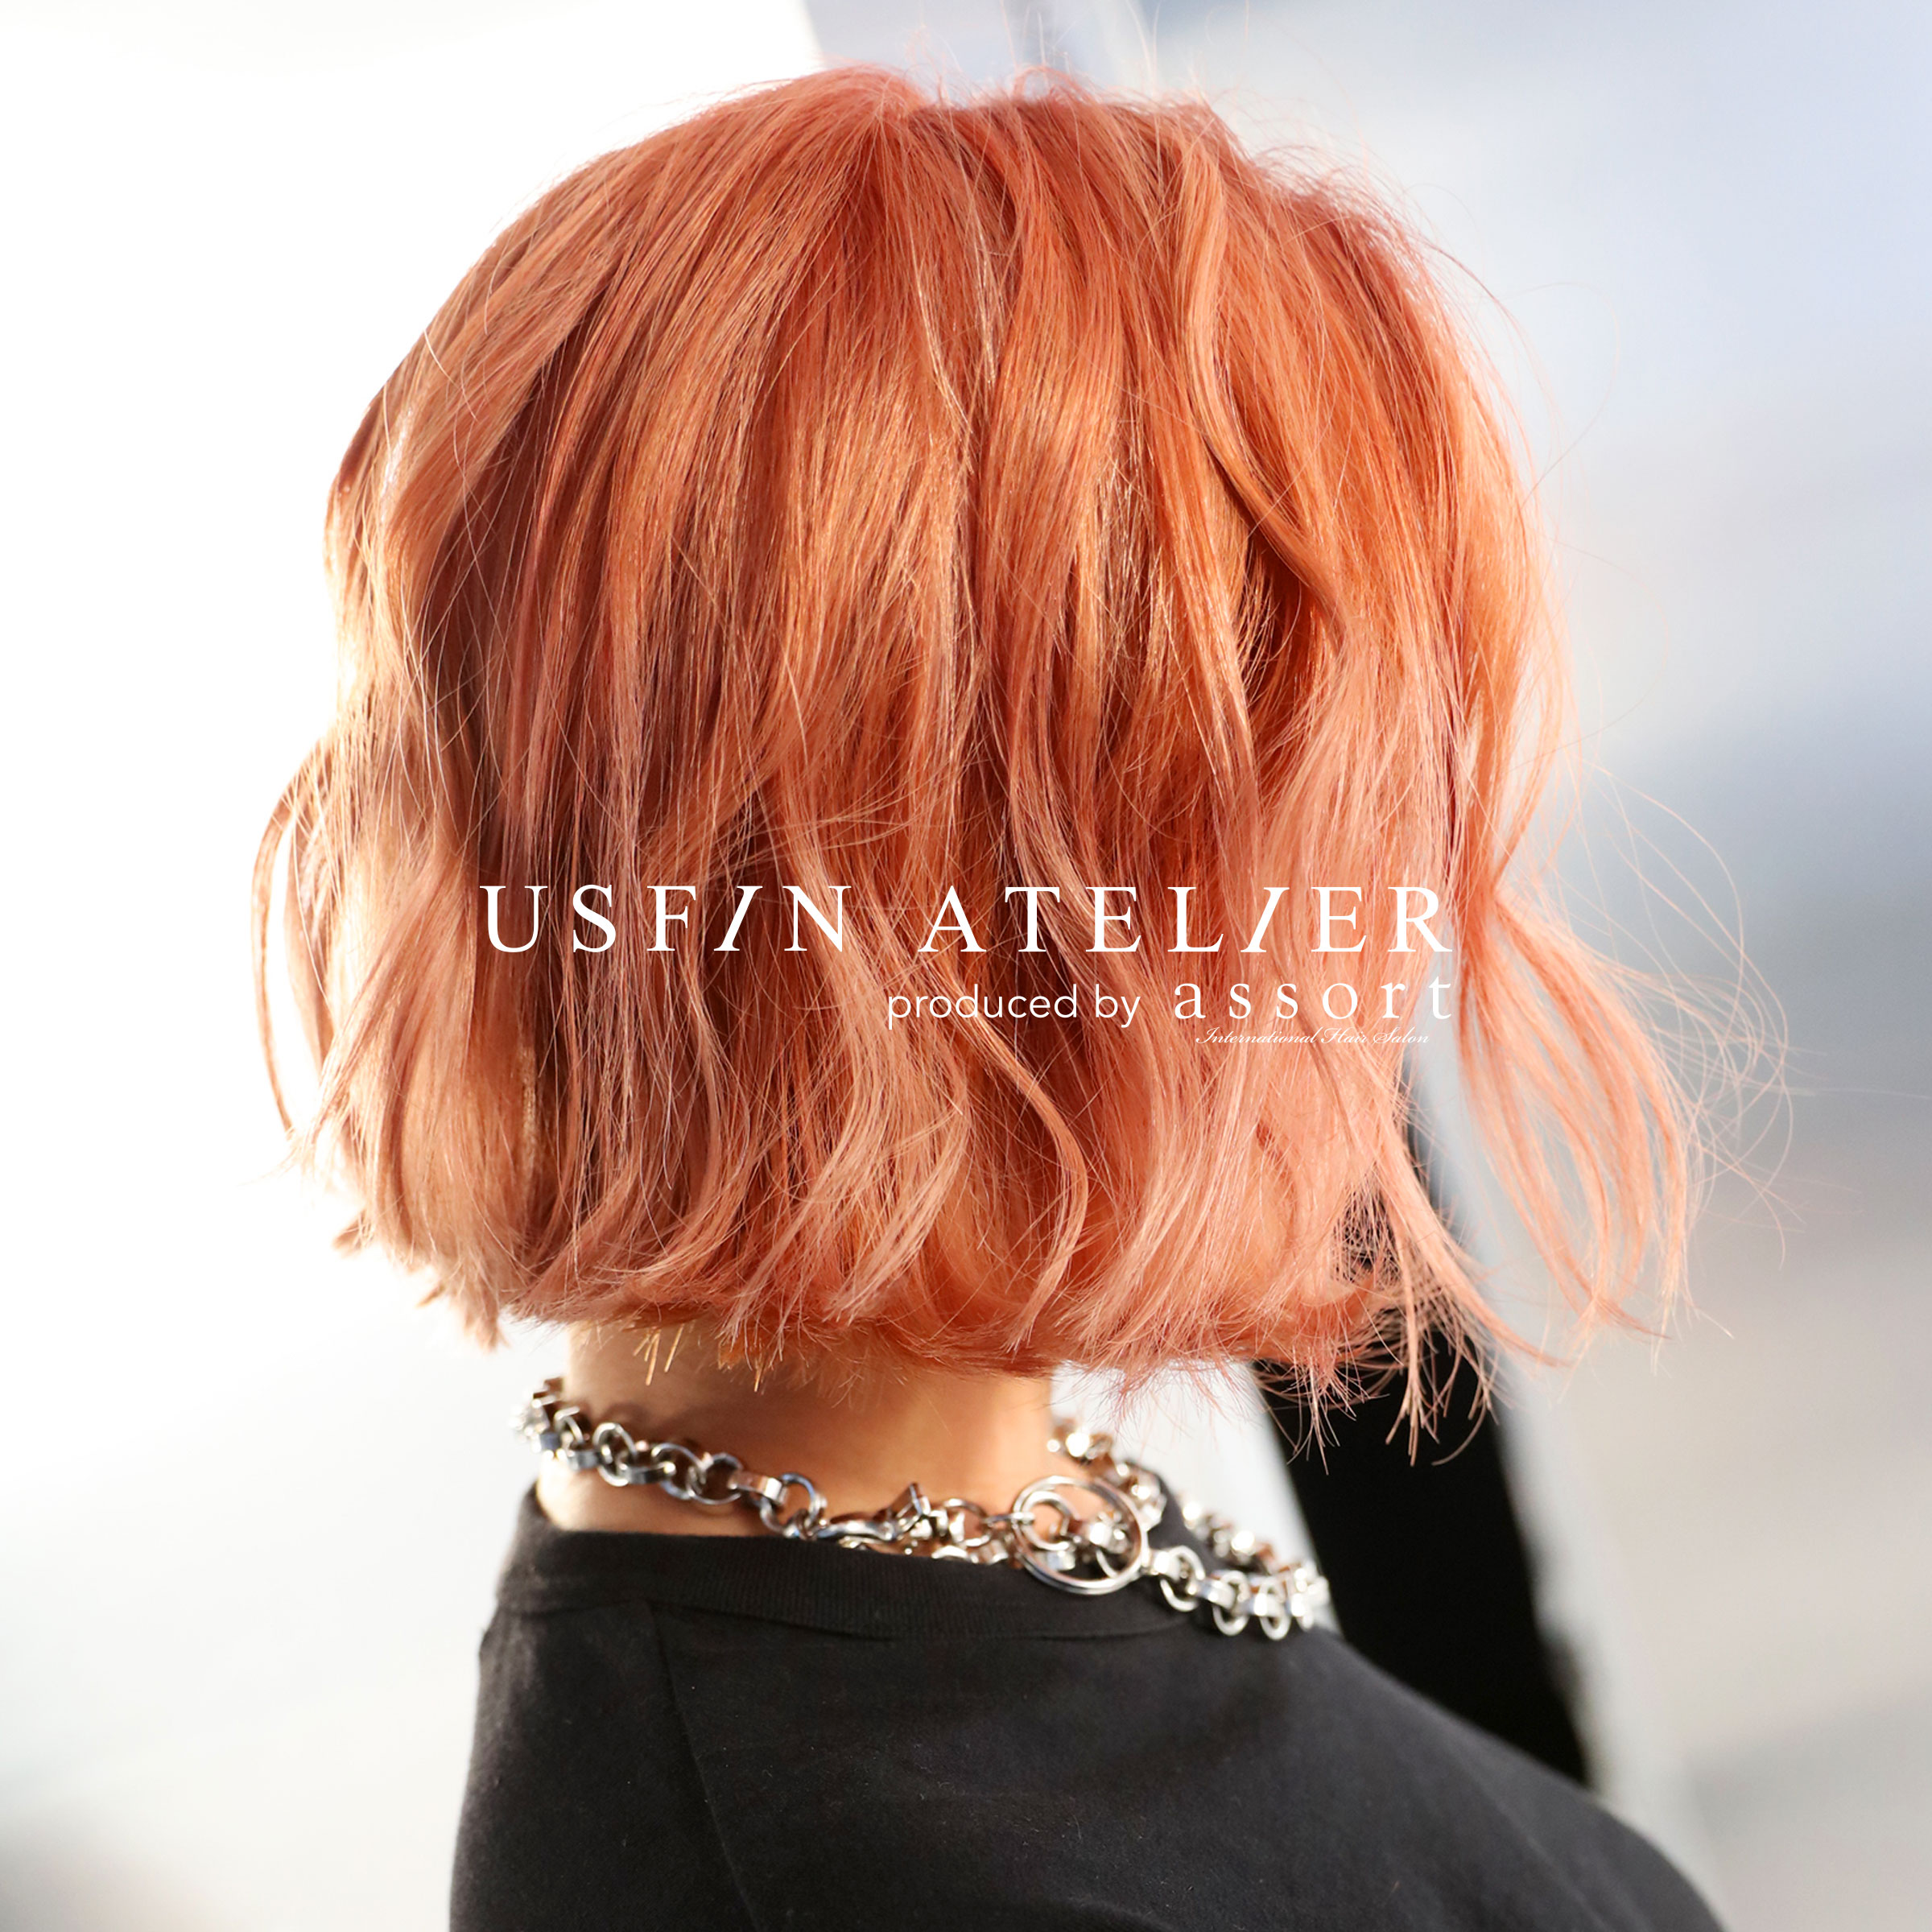 Soft peAch colour  - Menu: Bleach medium ($260), Second bleach ($90), Colour medium ($150), PCC Treatment (package price $80), Cut & style ($90)Total price: $530Time: approx. 4.5-5 hours